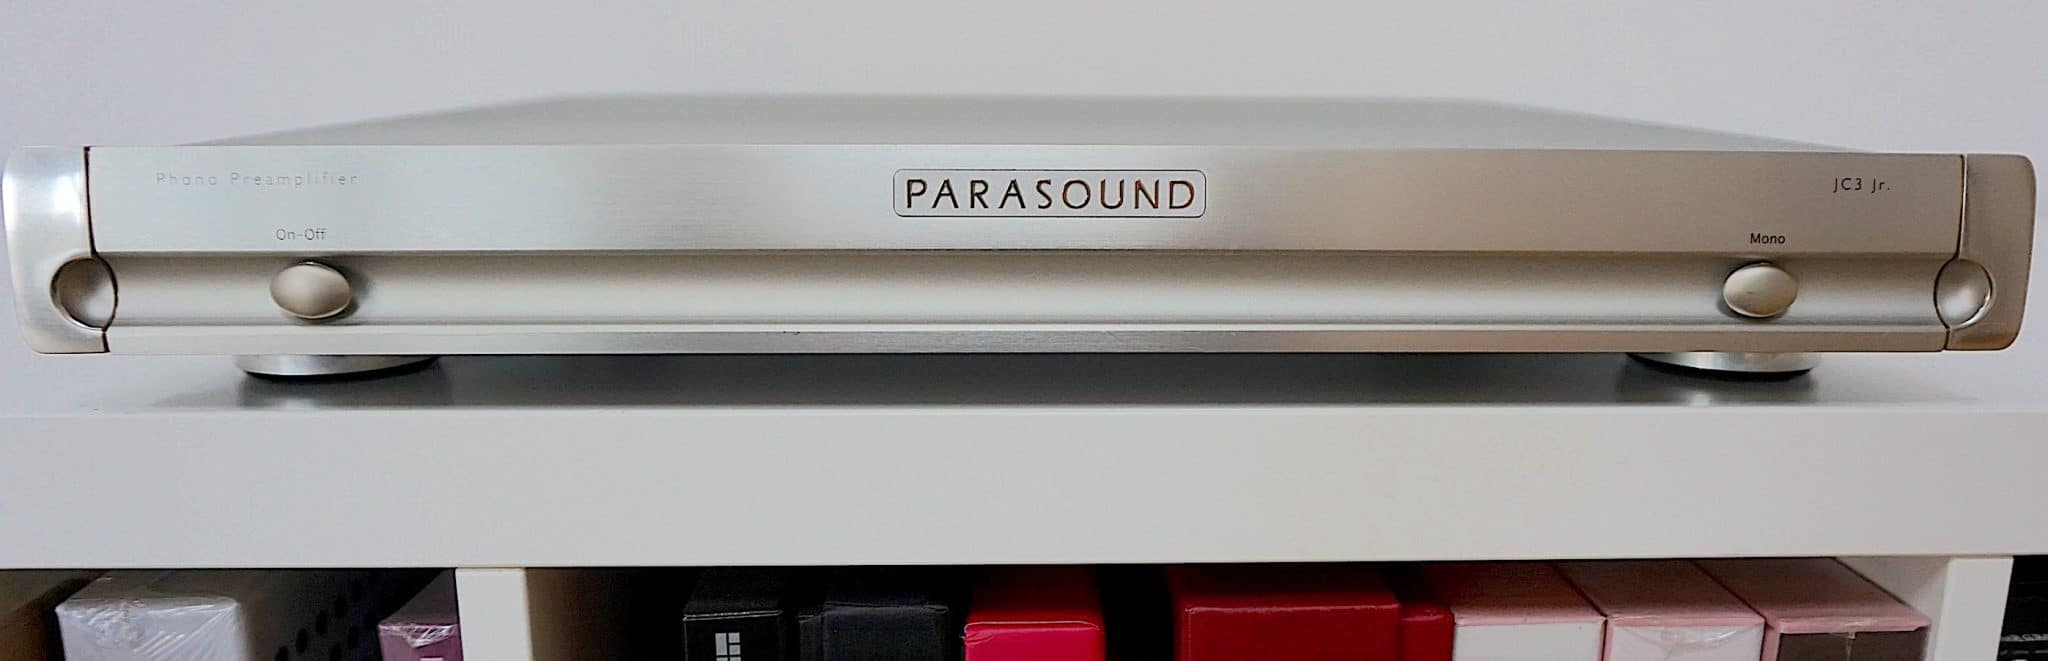 JC3 Jr From Parasound: Keeping The Balance - The Audiophile Man